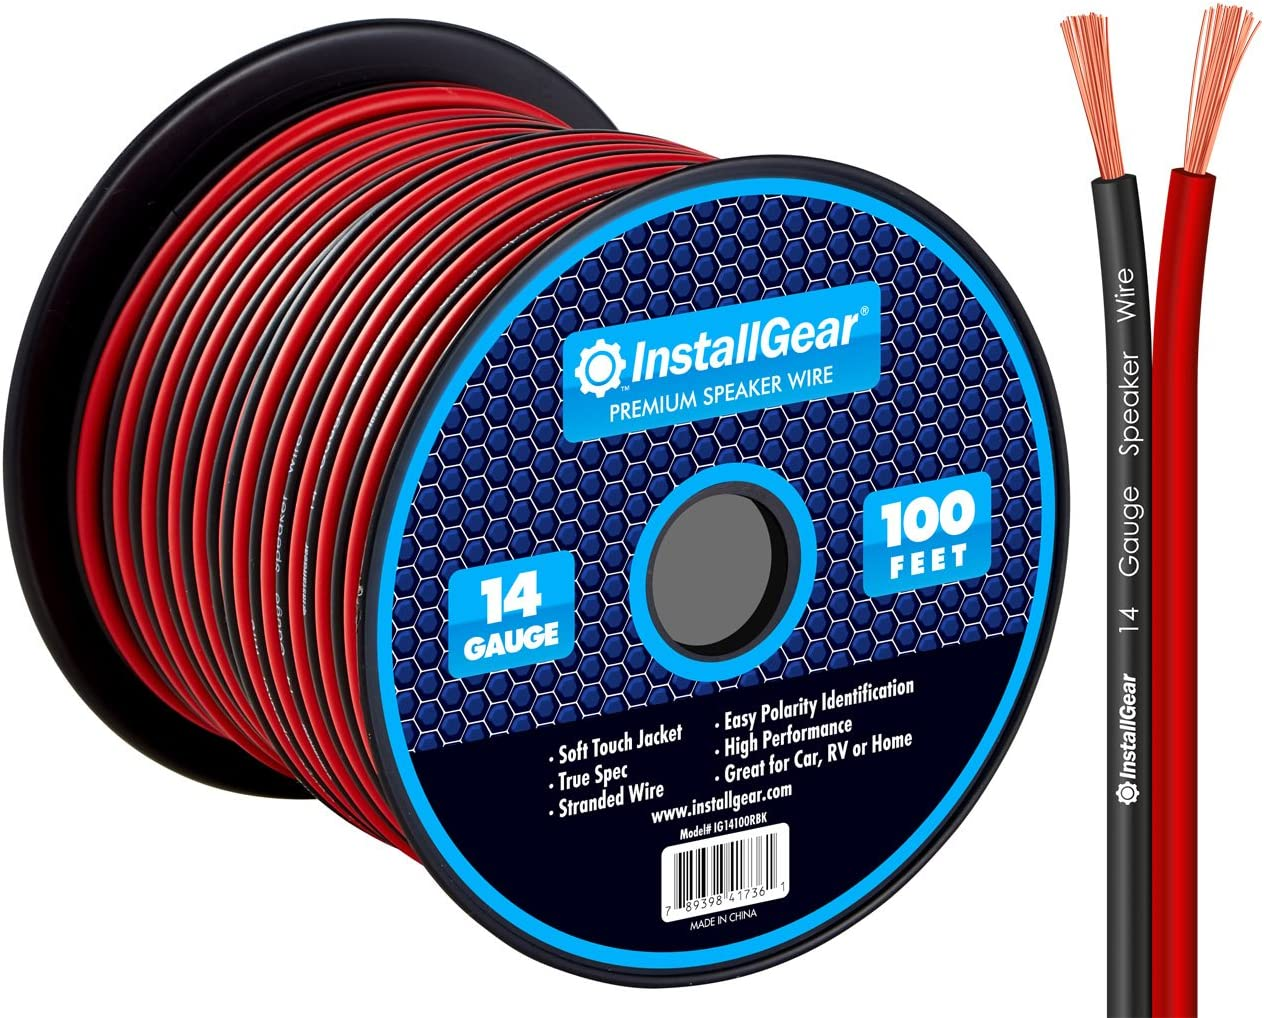 InstallGear 14 Gauge AWG 100ft Speaker Wire Cable - Red/Black: Home Audio & Theater